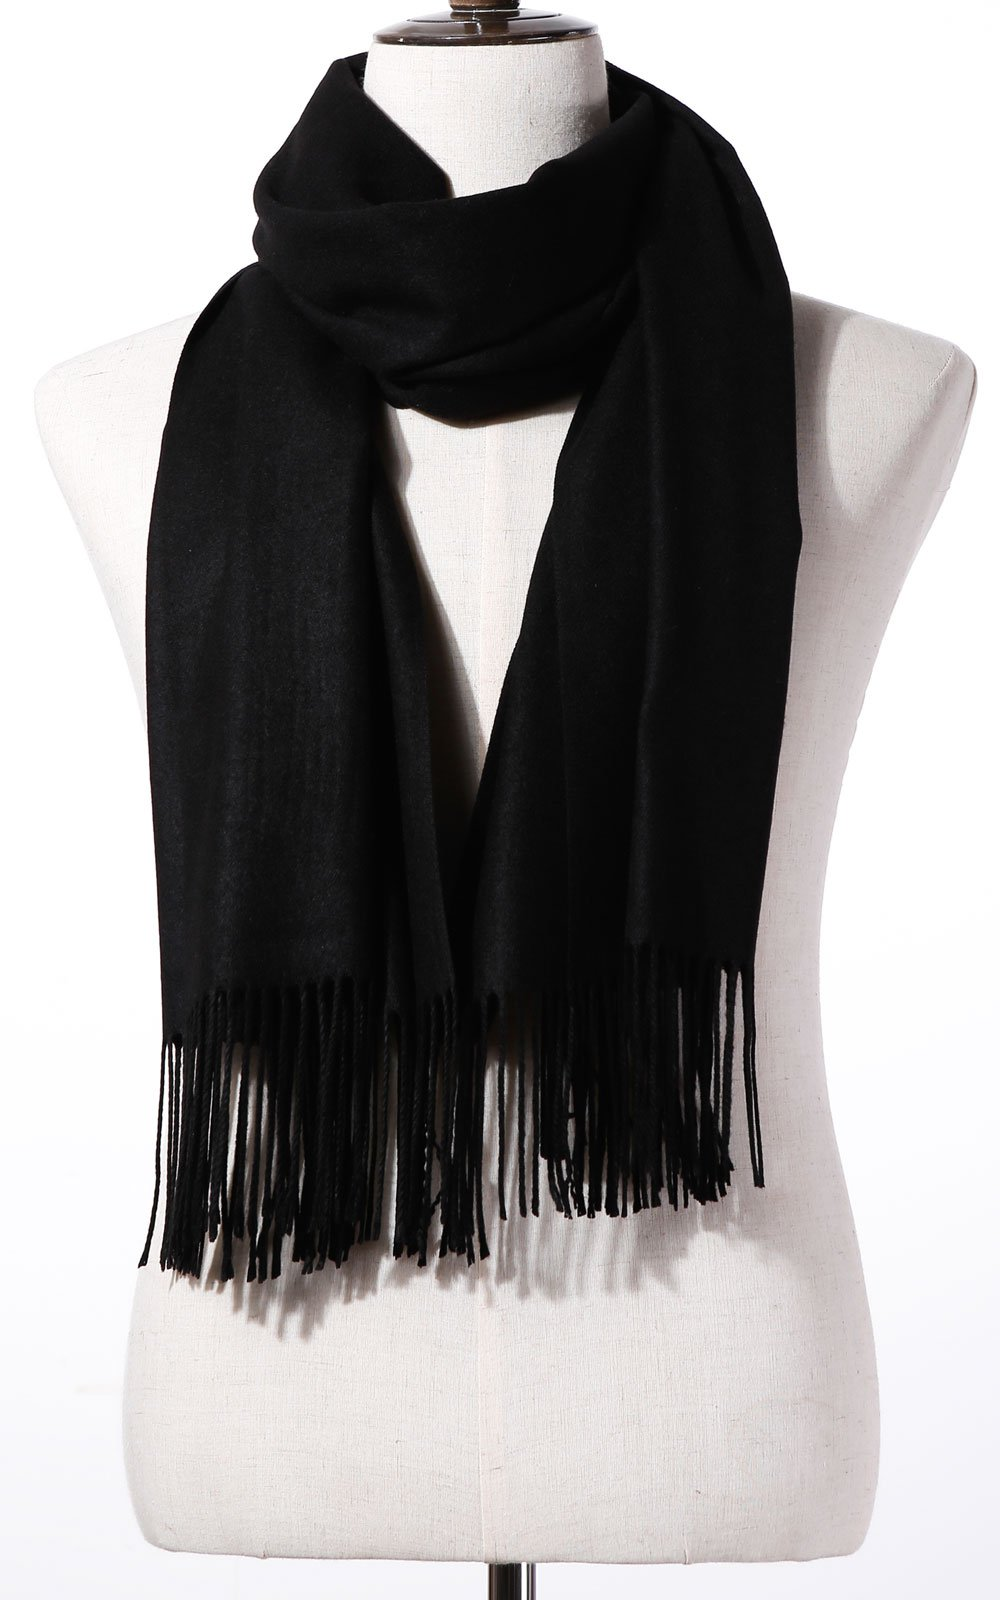 Womens Pashmina Shawl Wrap Scarf - Ohayomi Solid Color Cashmere Stole Extra Large 78''x28'' (Black) by OHAYOMI (Image #2)